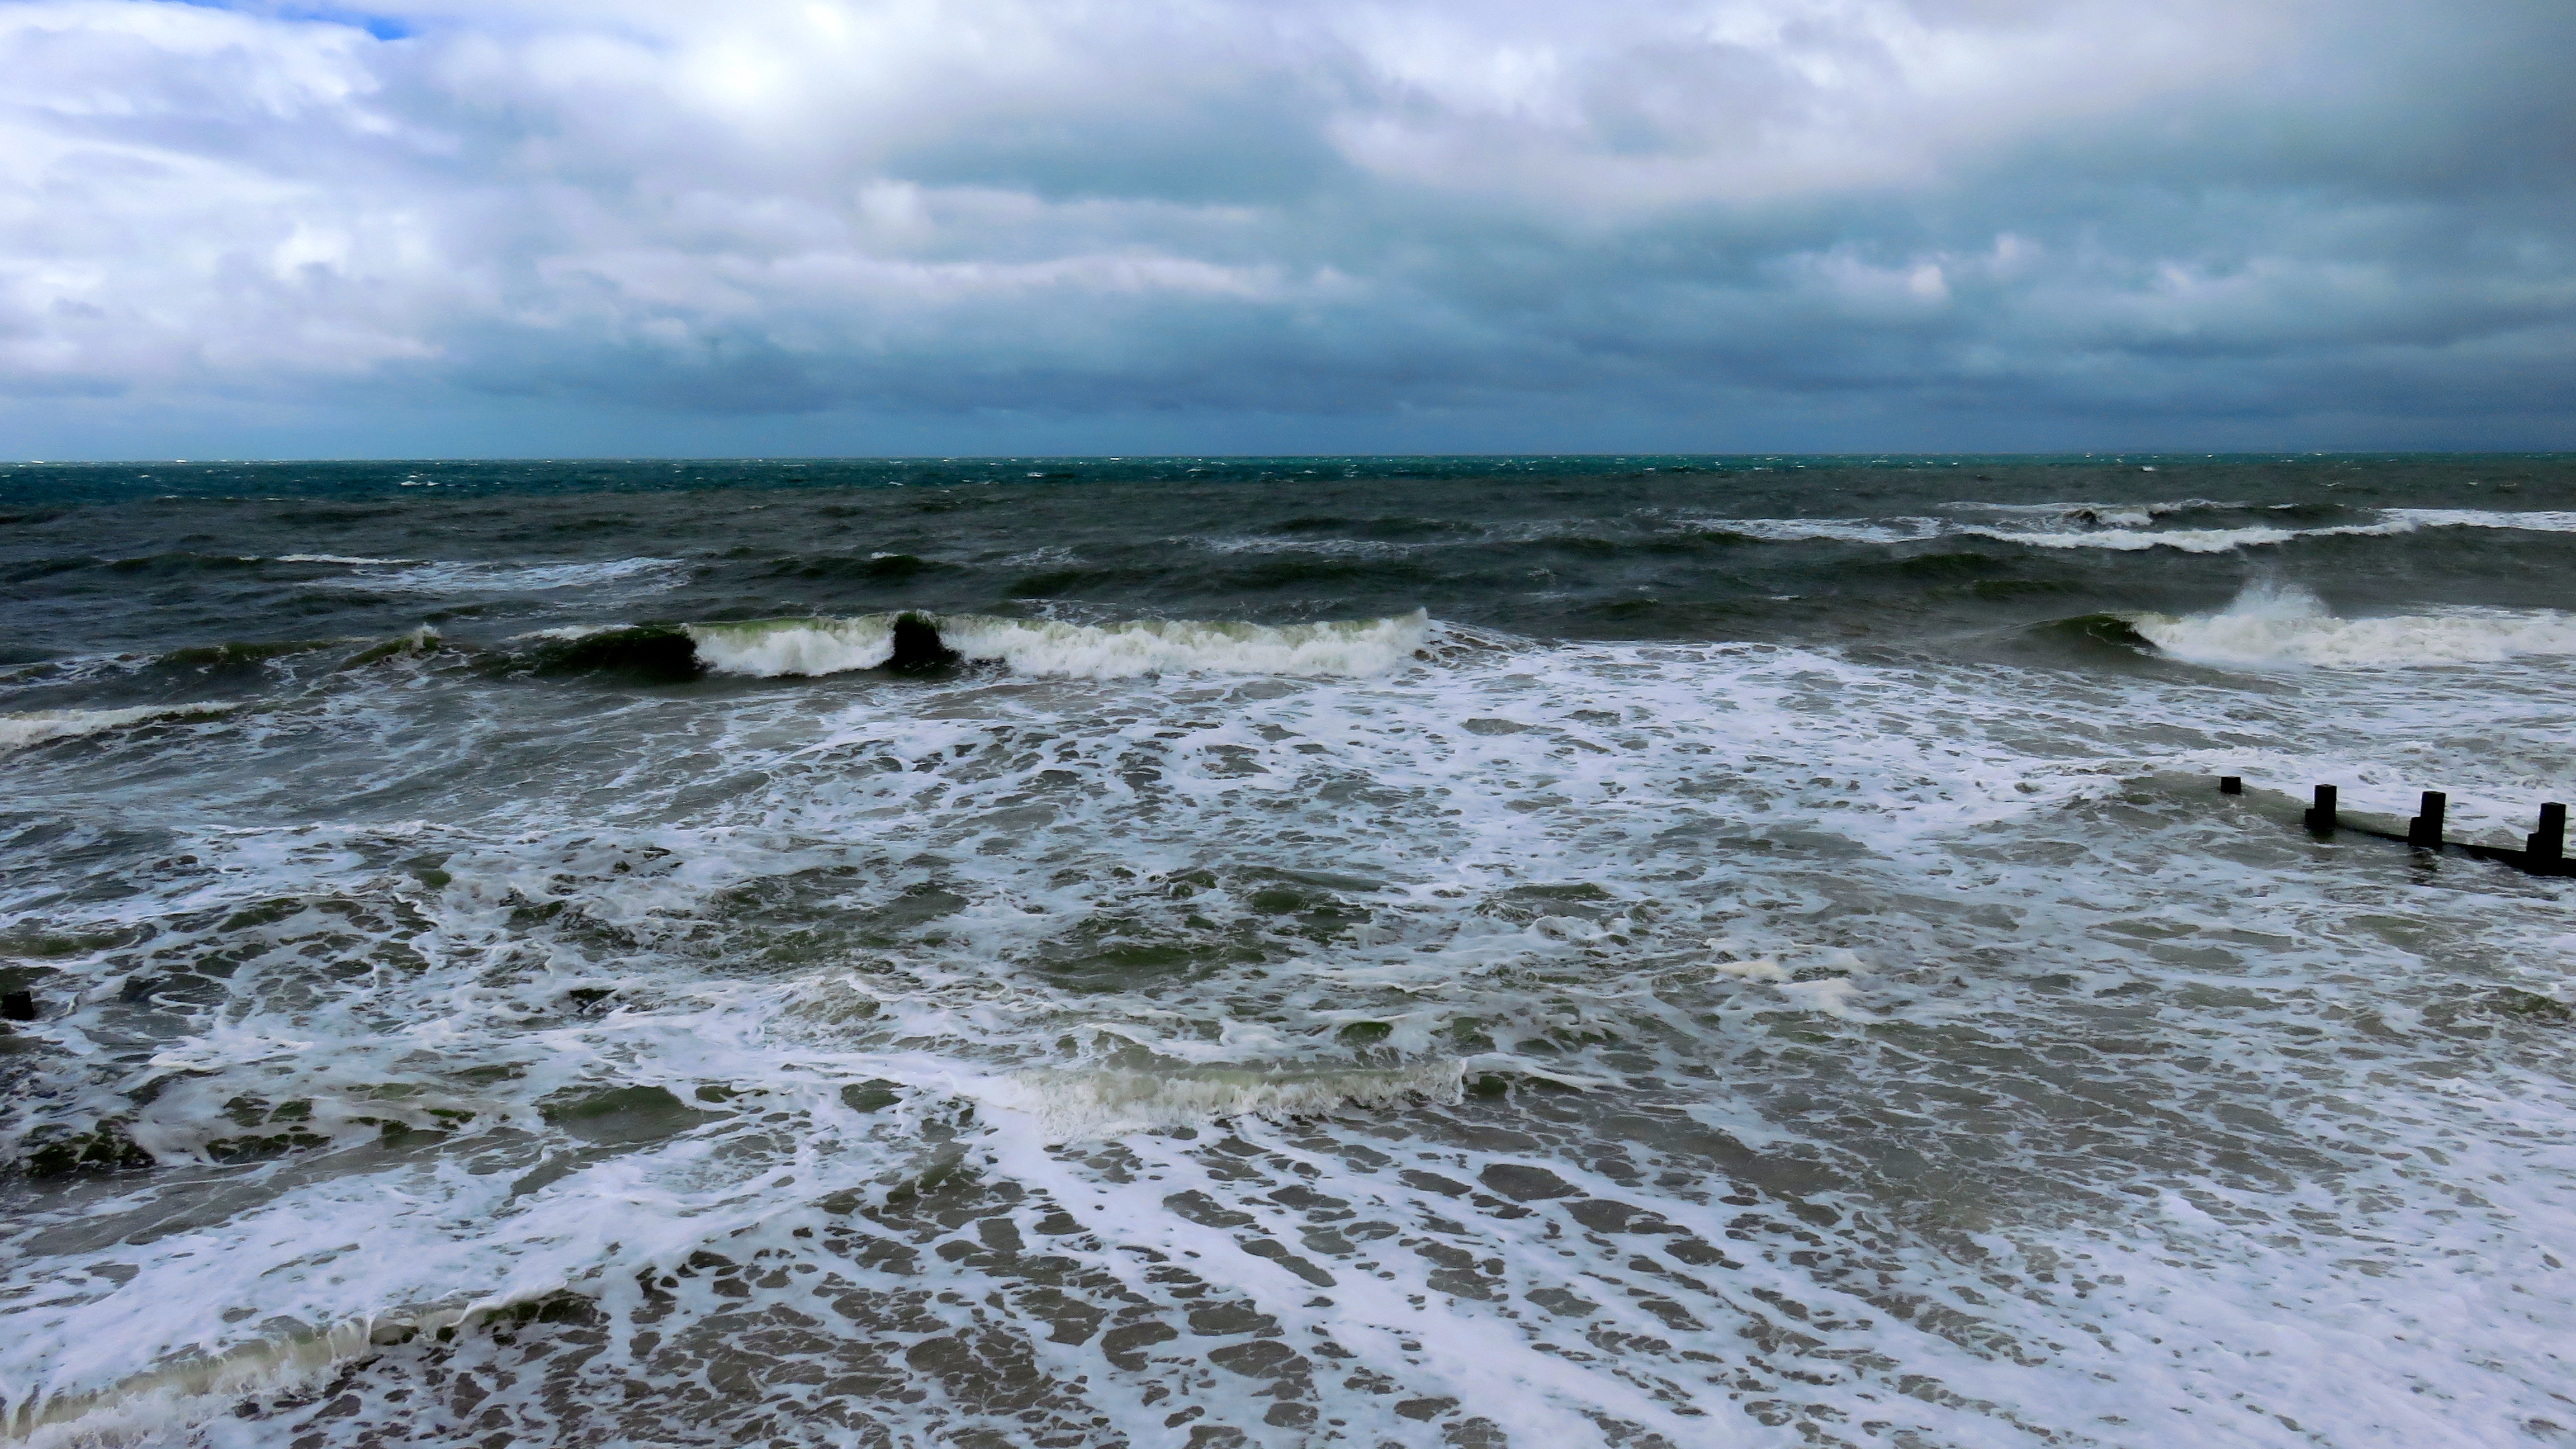 Difficulty Holding Eyes Open Seascape